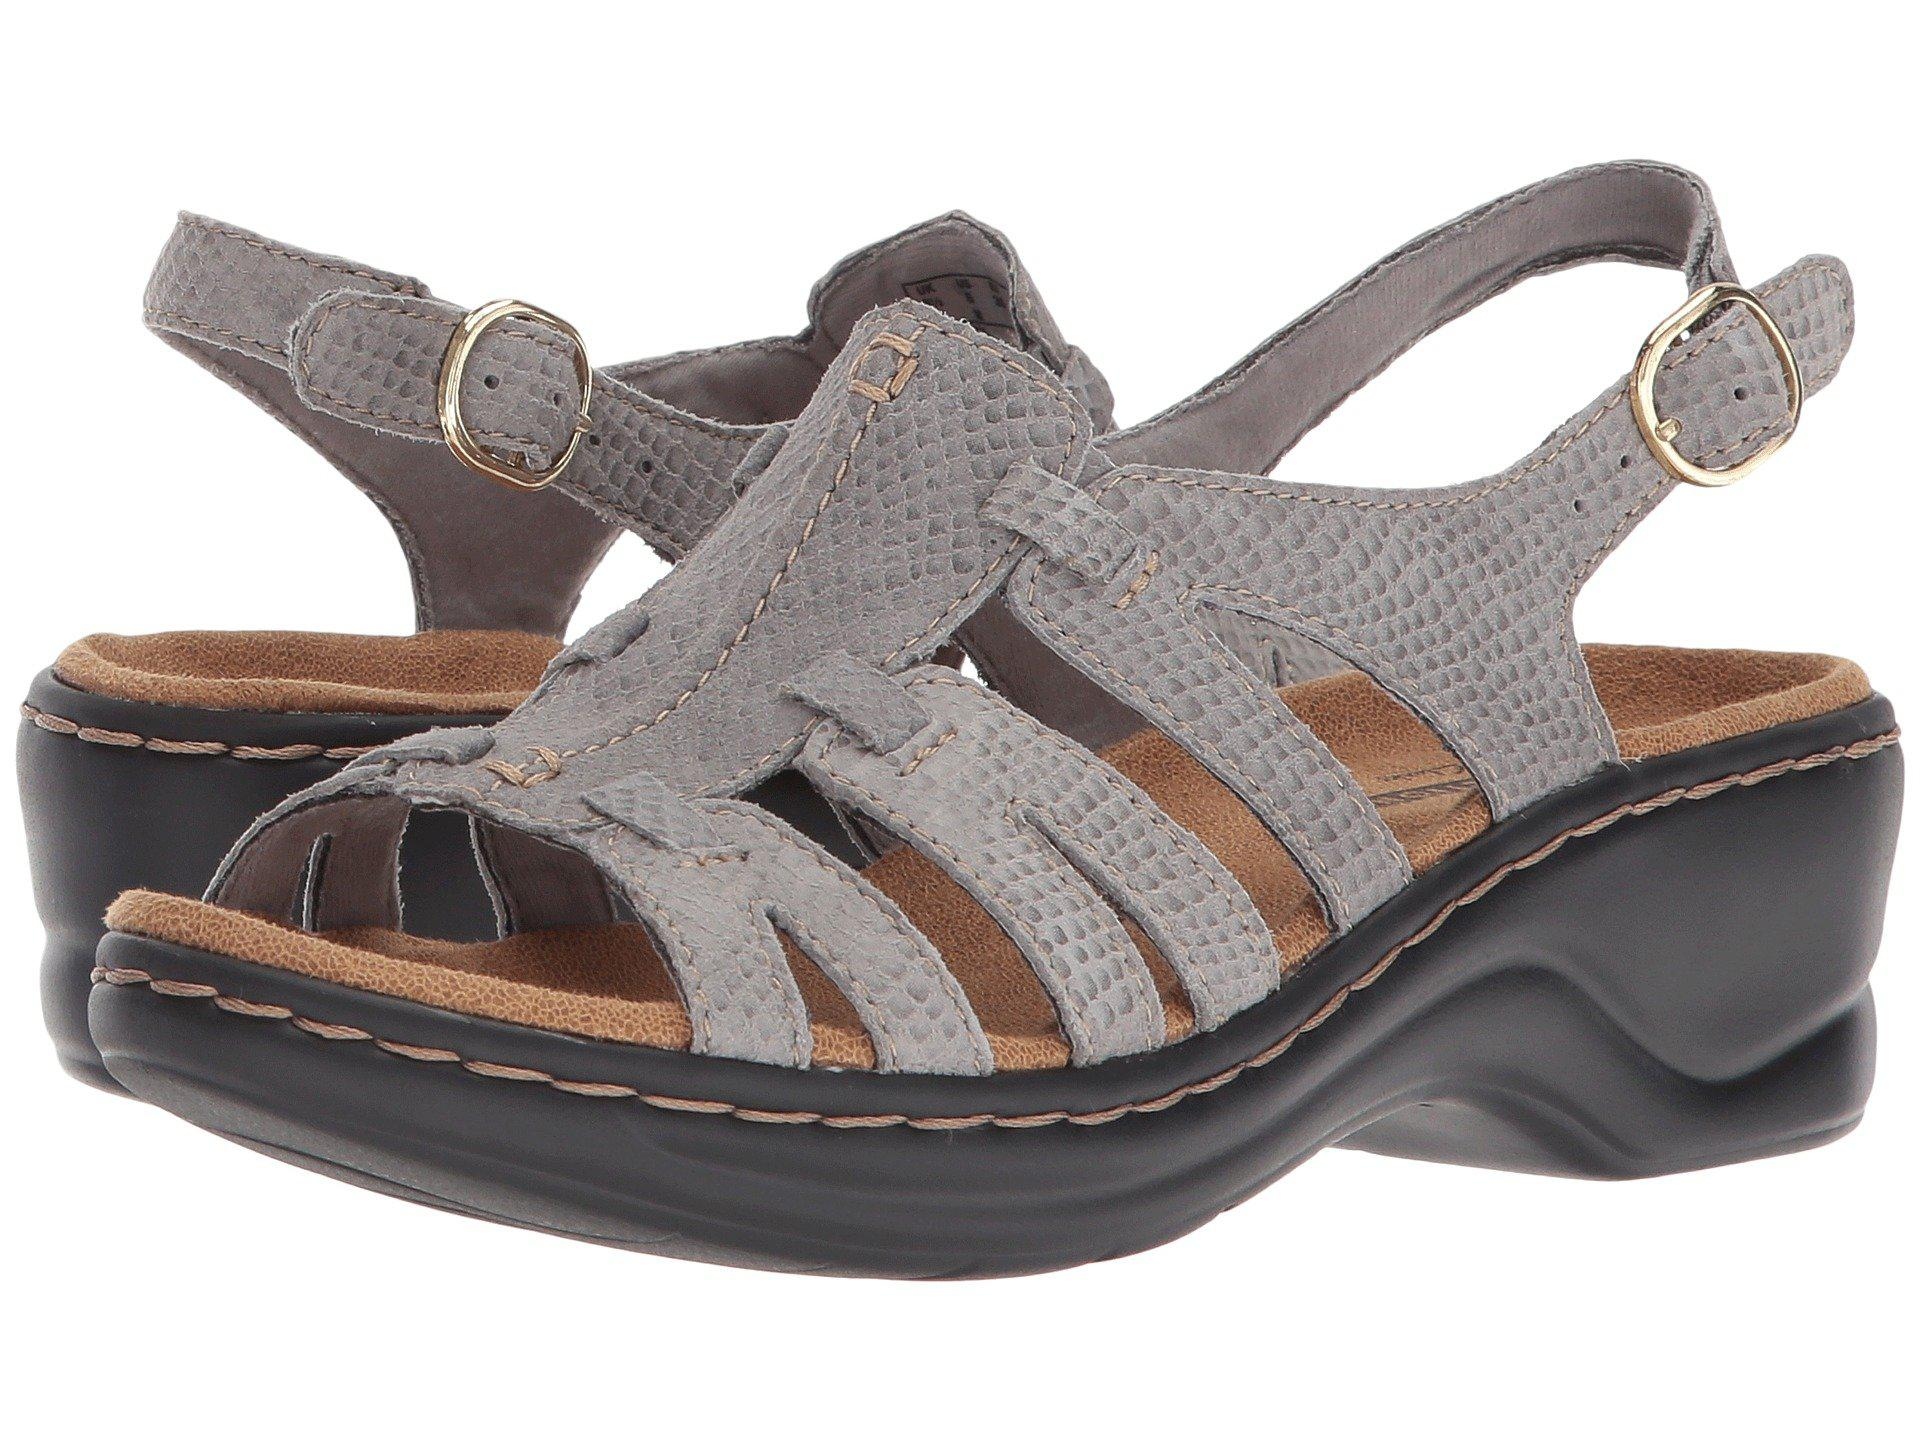 5867062c2 Lyst - Clarks Lexi Marigold Q (pewter Leather) Women s Sandals in Gray